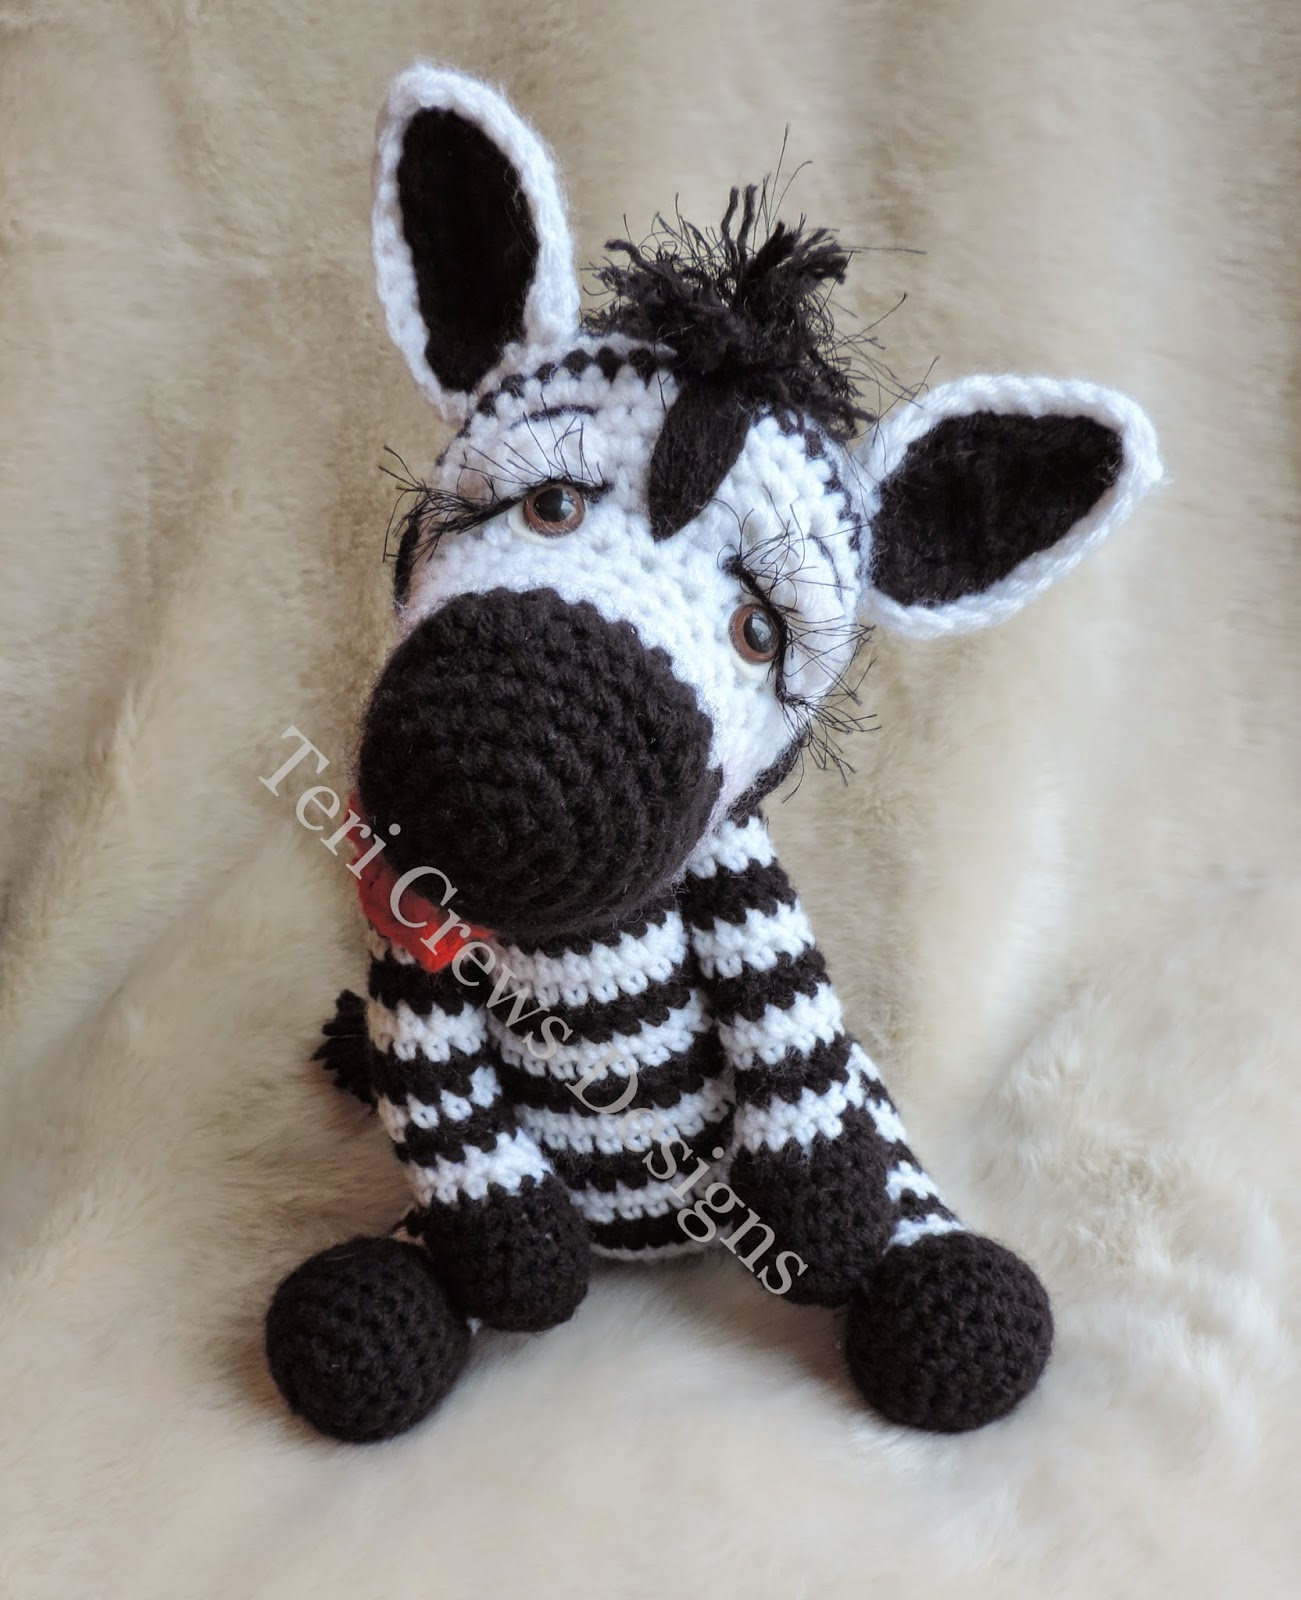 Simply Cute Zebra and Zebra Huggy Blanket Crochet Patterns are